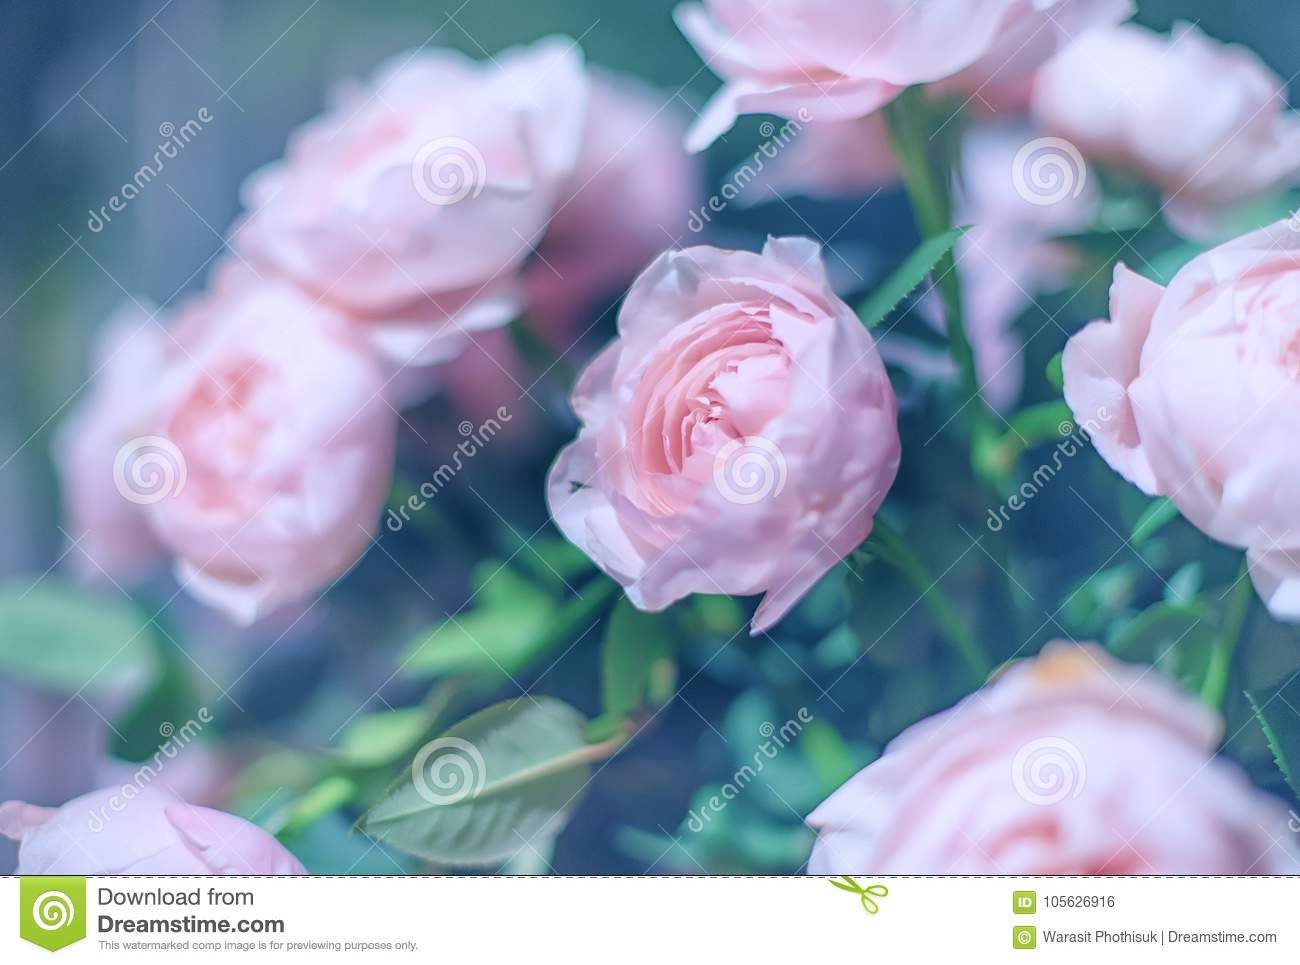 Beautiful roses flowers stock photo image of bouquet 105626916 download beautiful roses flowers stock photo image of bouquet 105626916 izmirmasajfo